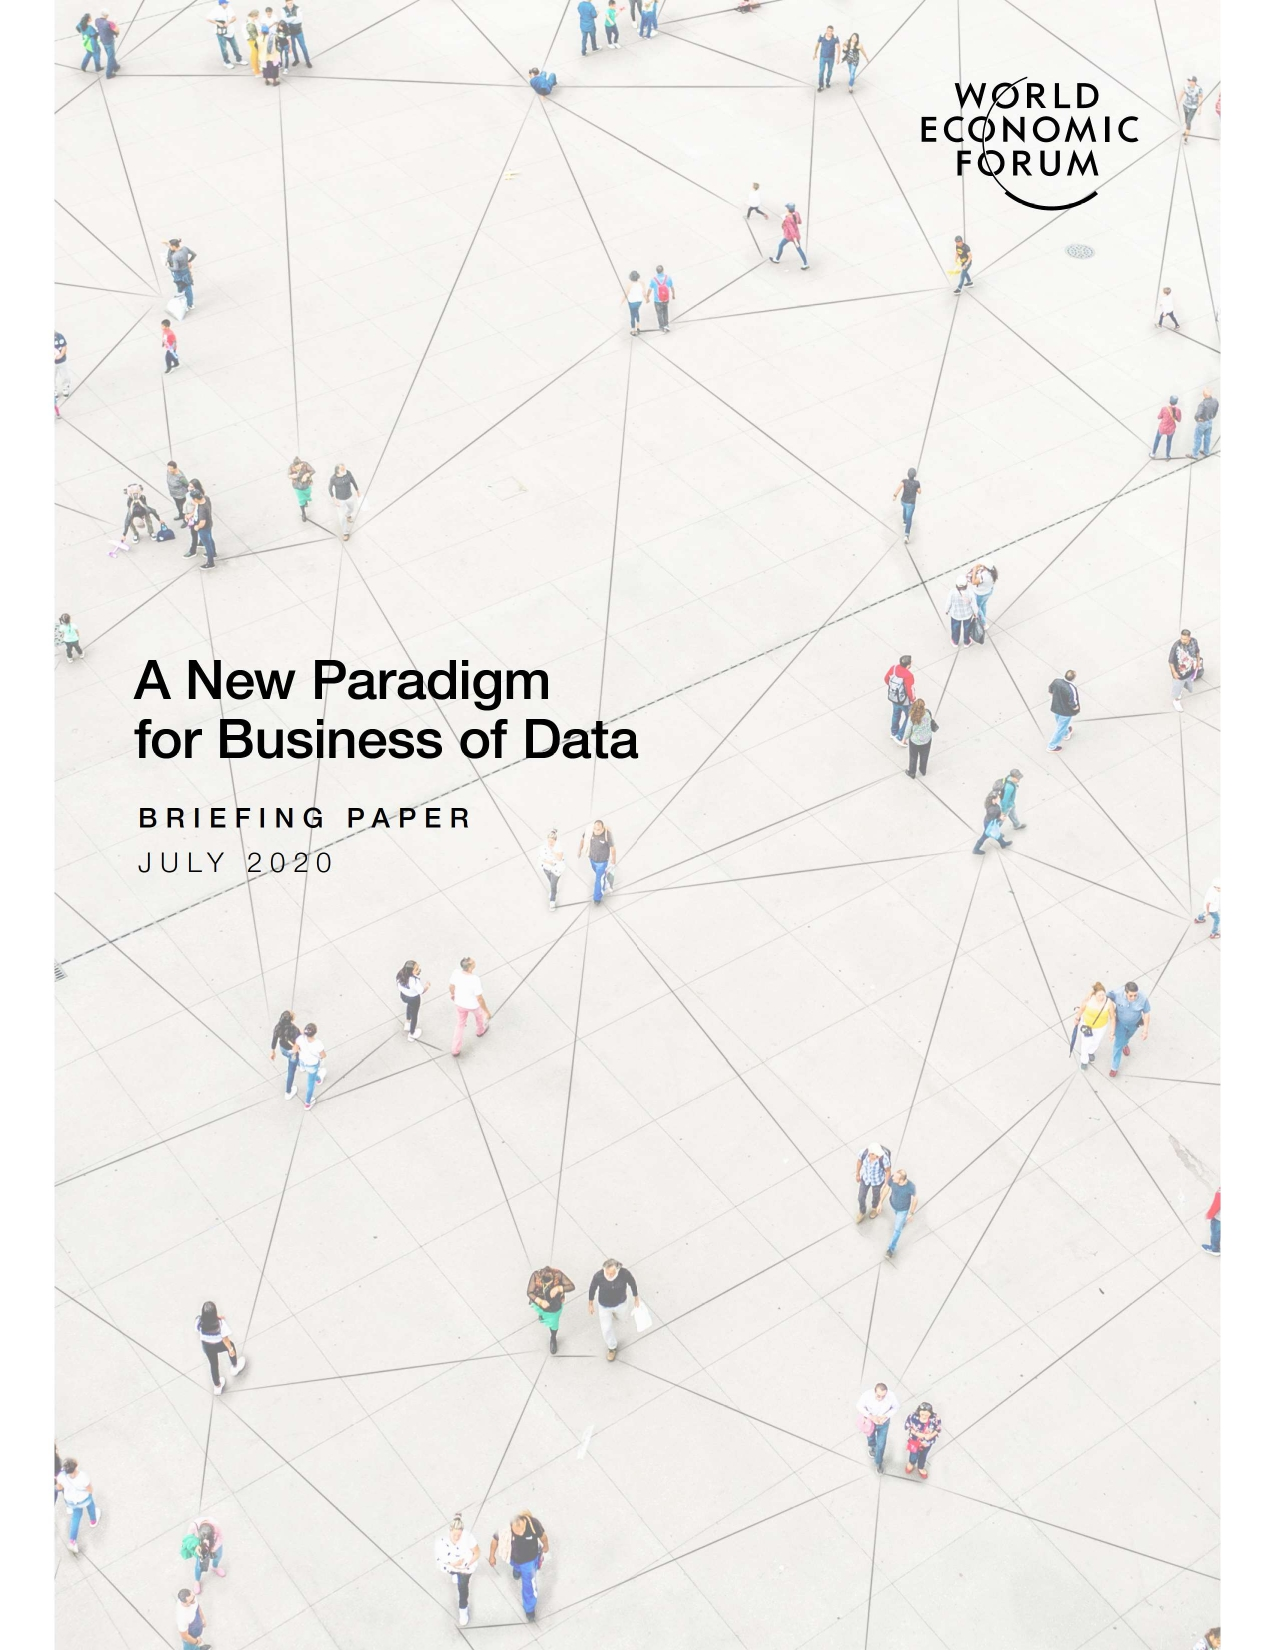 A new Paradigm for Business of Data